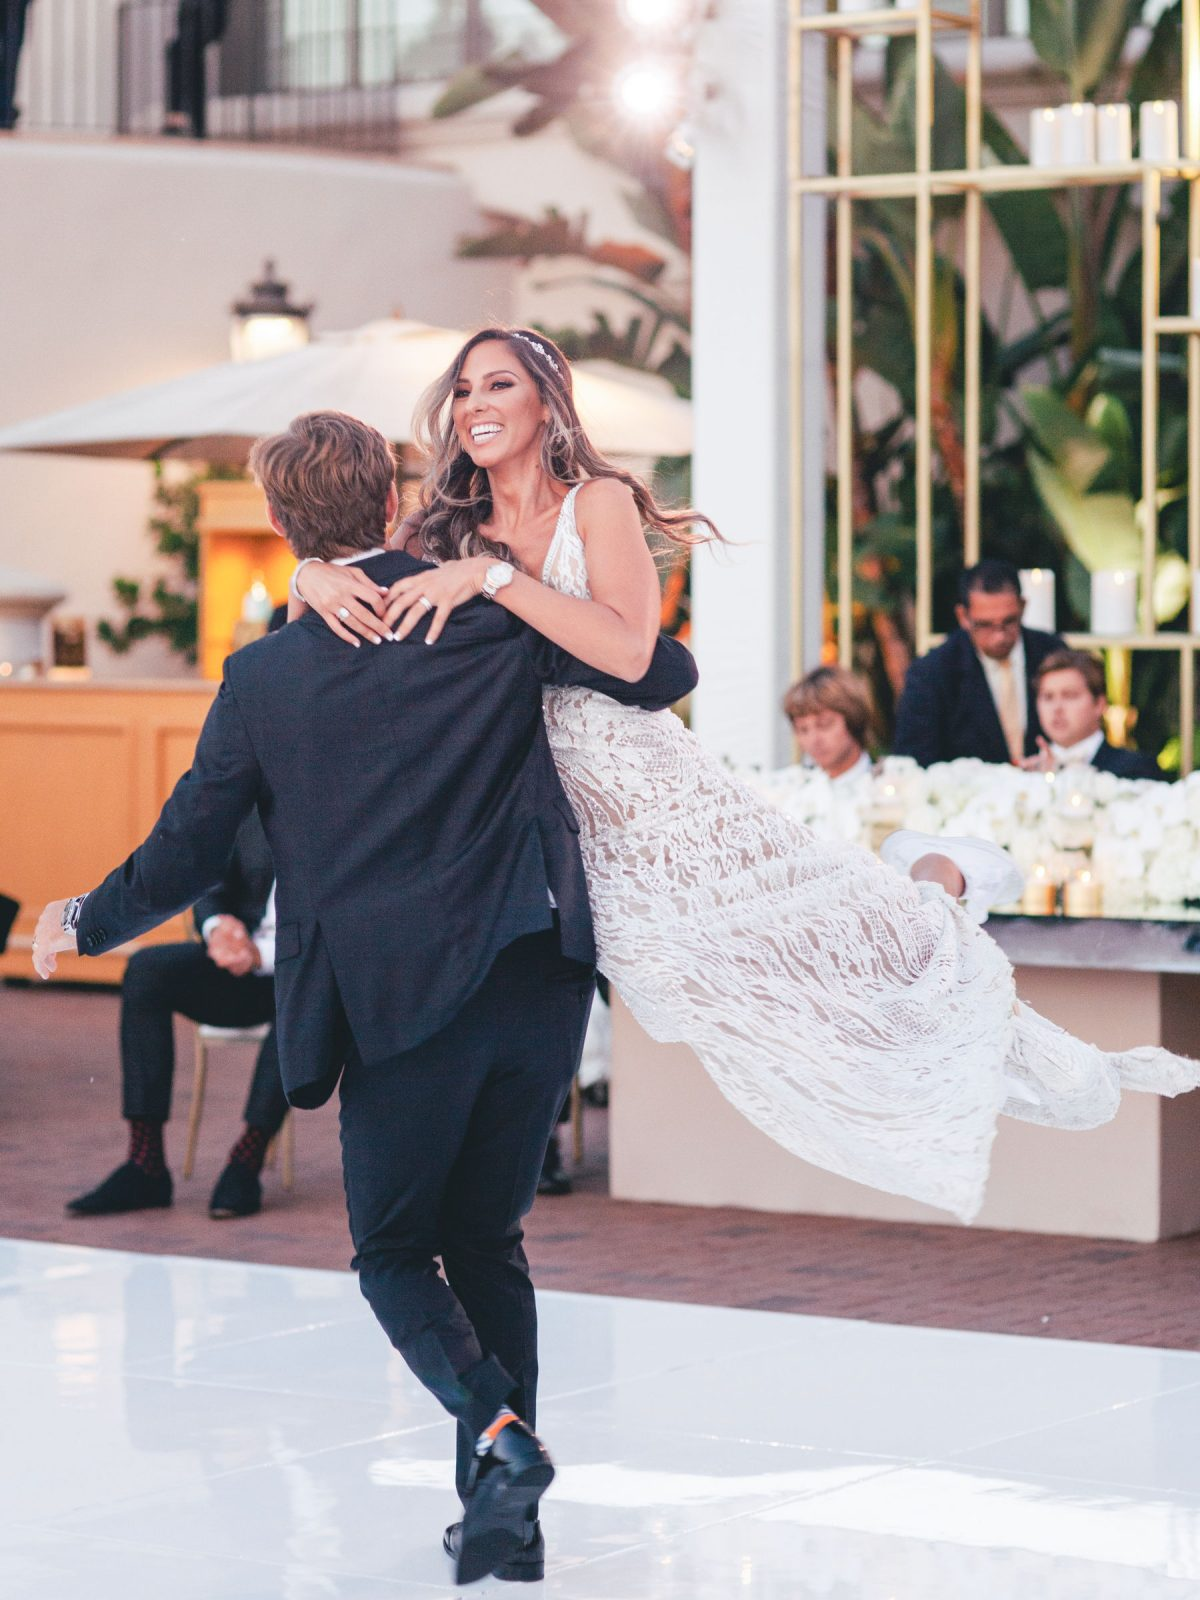 wedding-pelican-hill-newport-coast-photographer-alana-brent-abbf6077